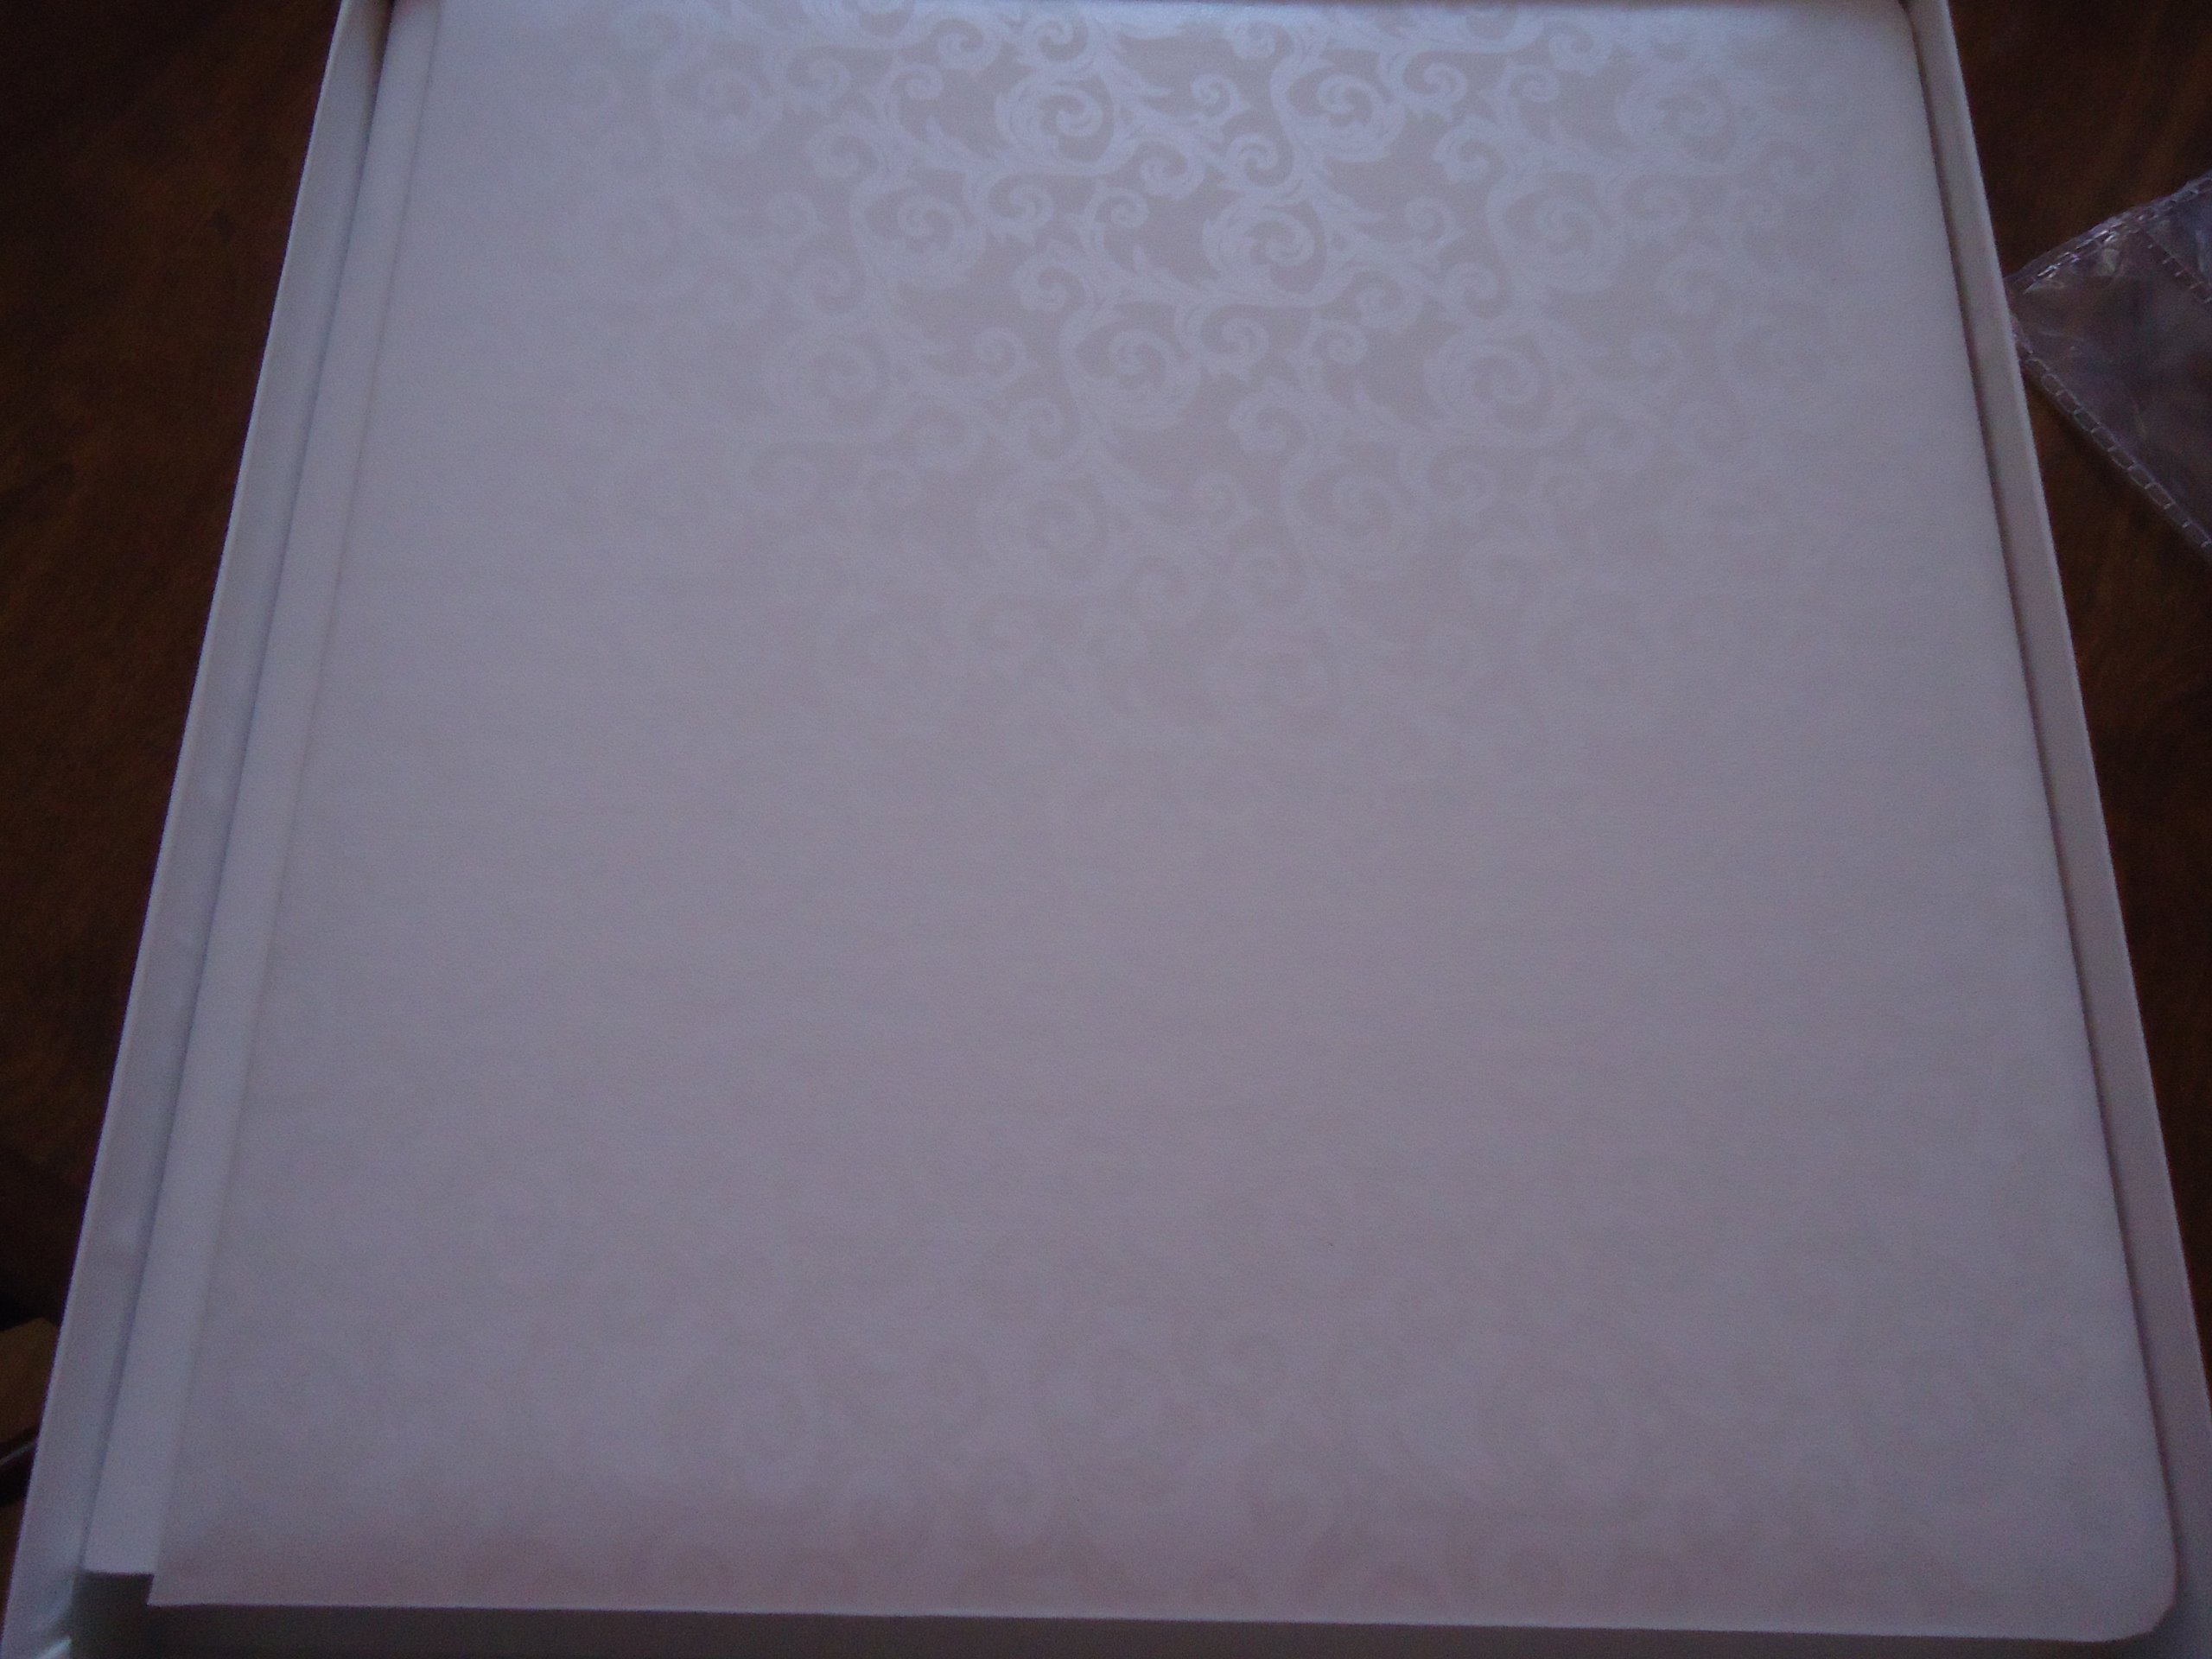 Creative Memories Promise Wedding 12 x 12 Scrapbook CM-12B